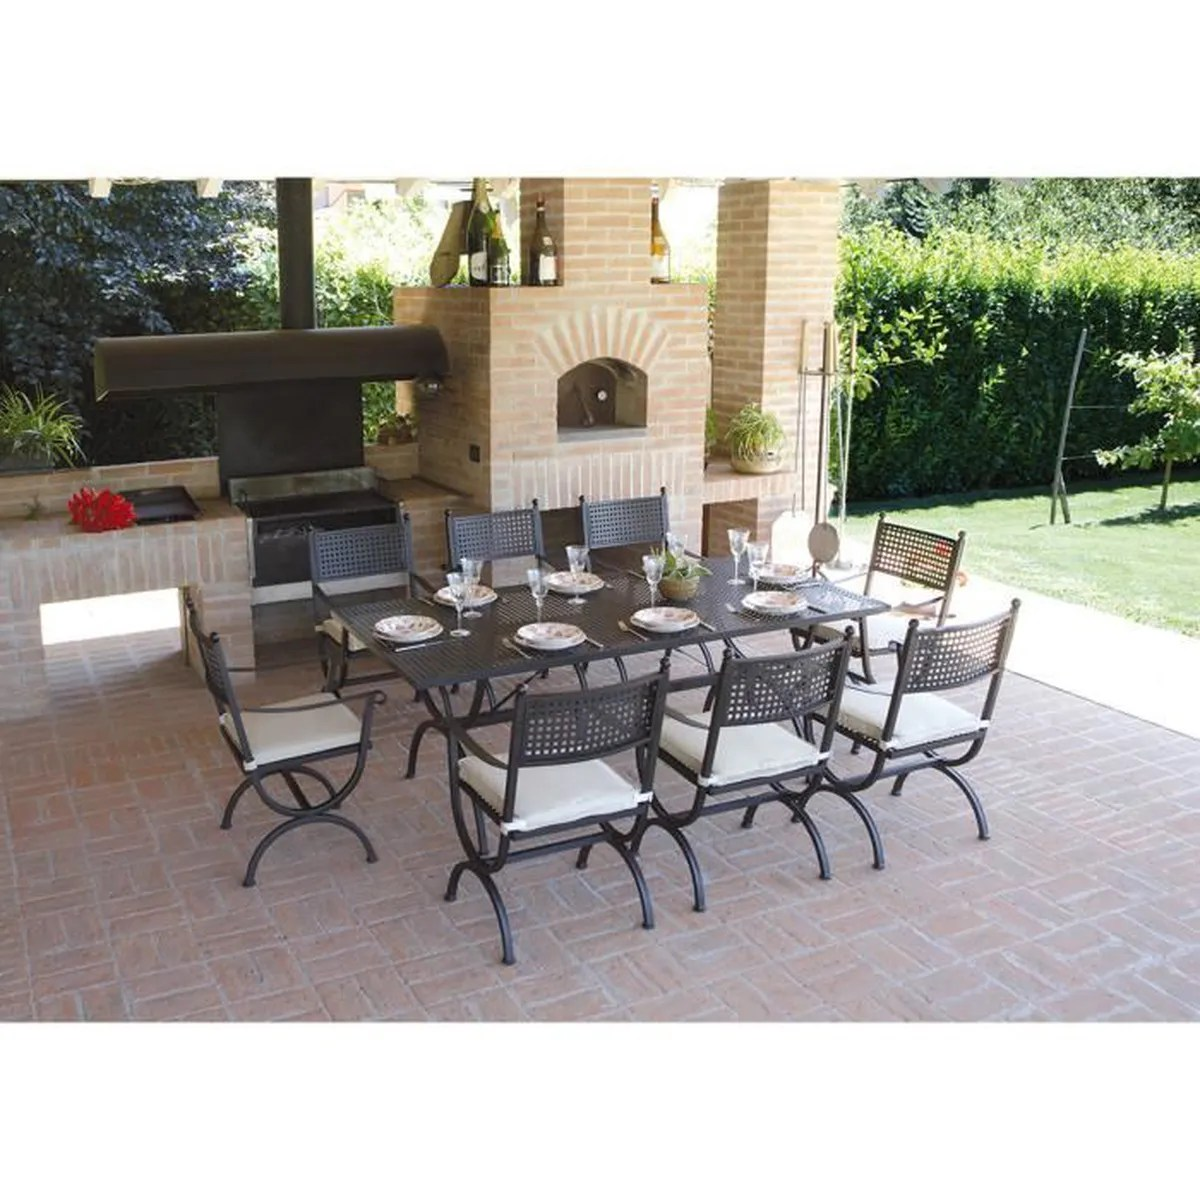 Salon De Jardin Table Chaise Ensemble De Jardin Table Rectangulaire 8 Chaises En Fer Forgé Noir H 74 X L 200 X P 100 Cm